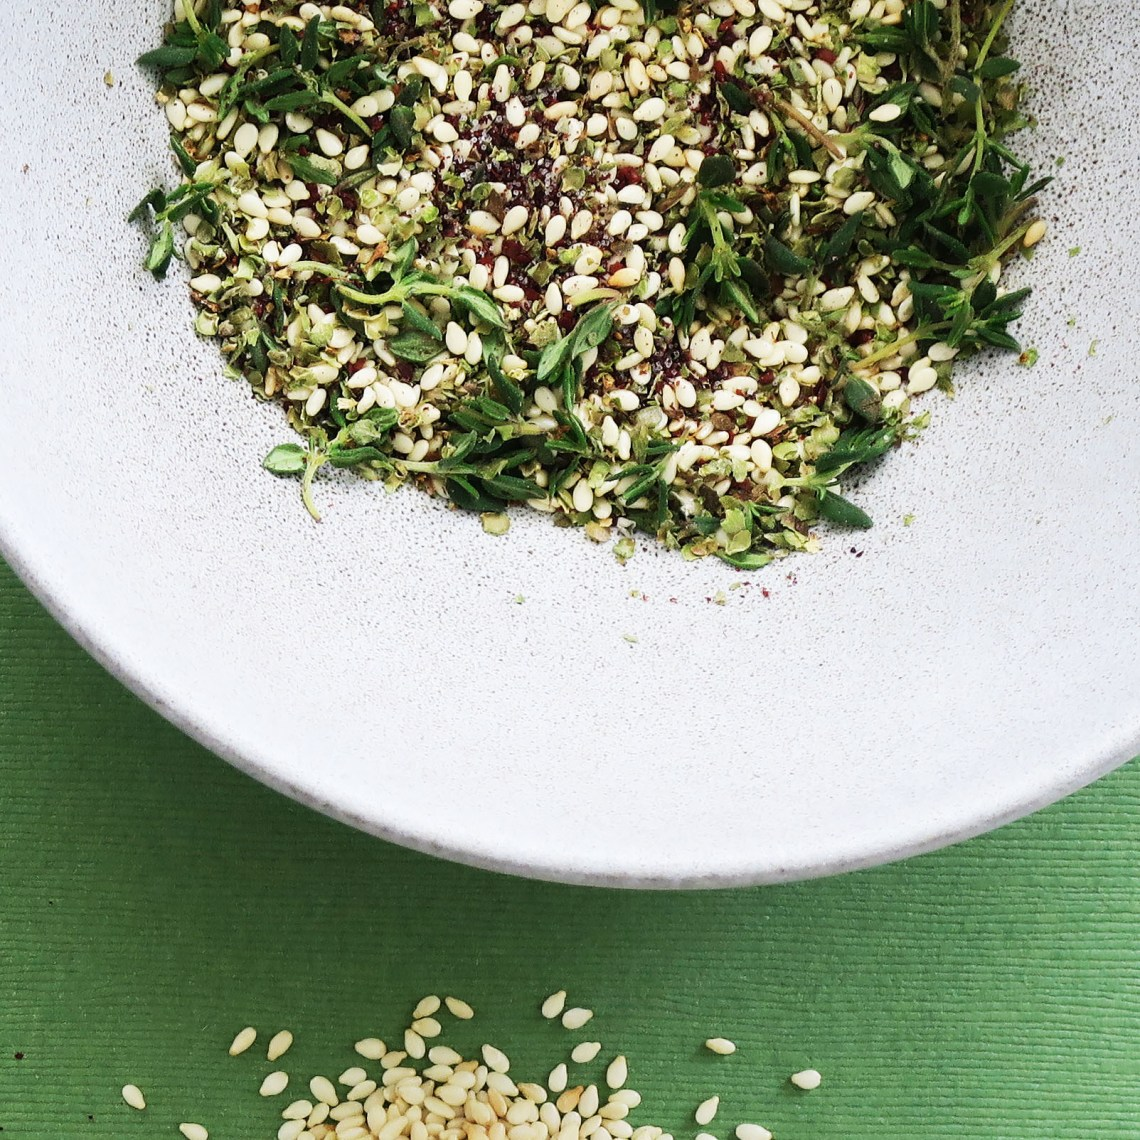 Zatar. A Middle Eastern spice blend with thyme, marjoram, sumac, salt and sesame seeds.